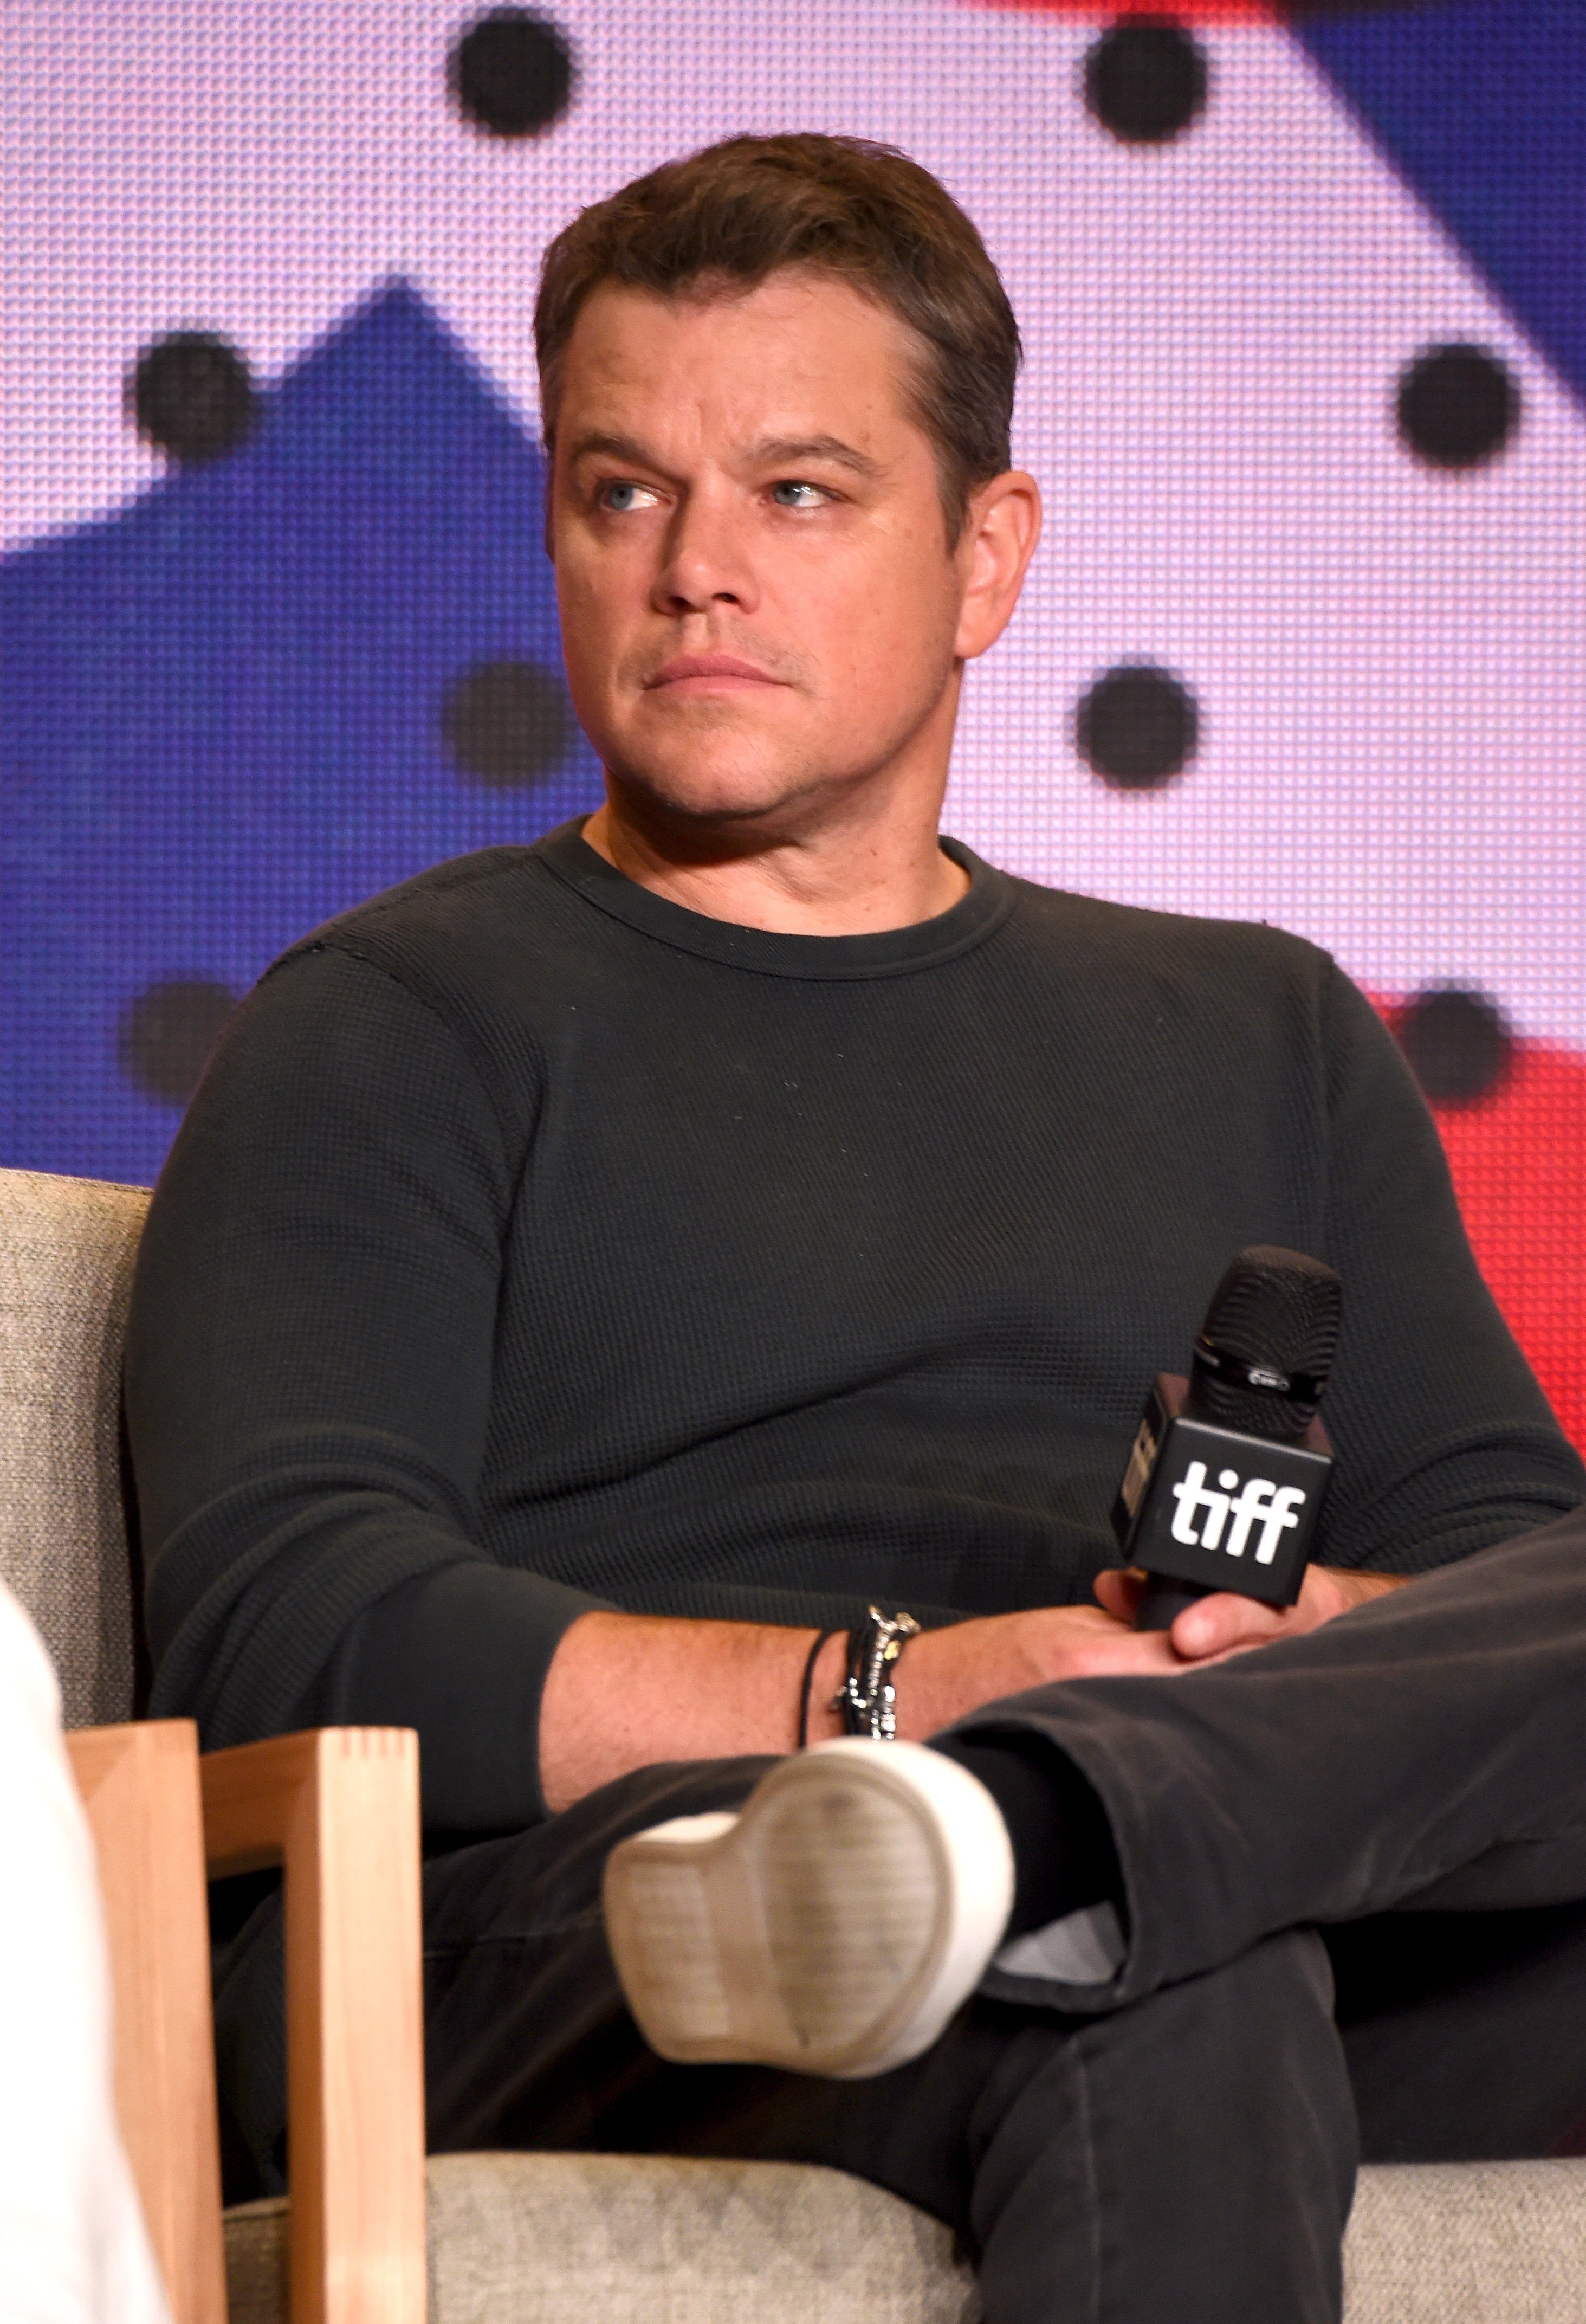 """Matt Damon speaks onstage during the """"Downsizing"""" press conference during the 2017 Toronto International Film Festival at TIFF Bell Lightbox on September 10, 2017 in Toronto, Canada 